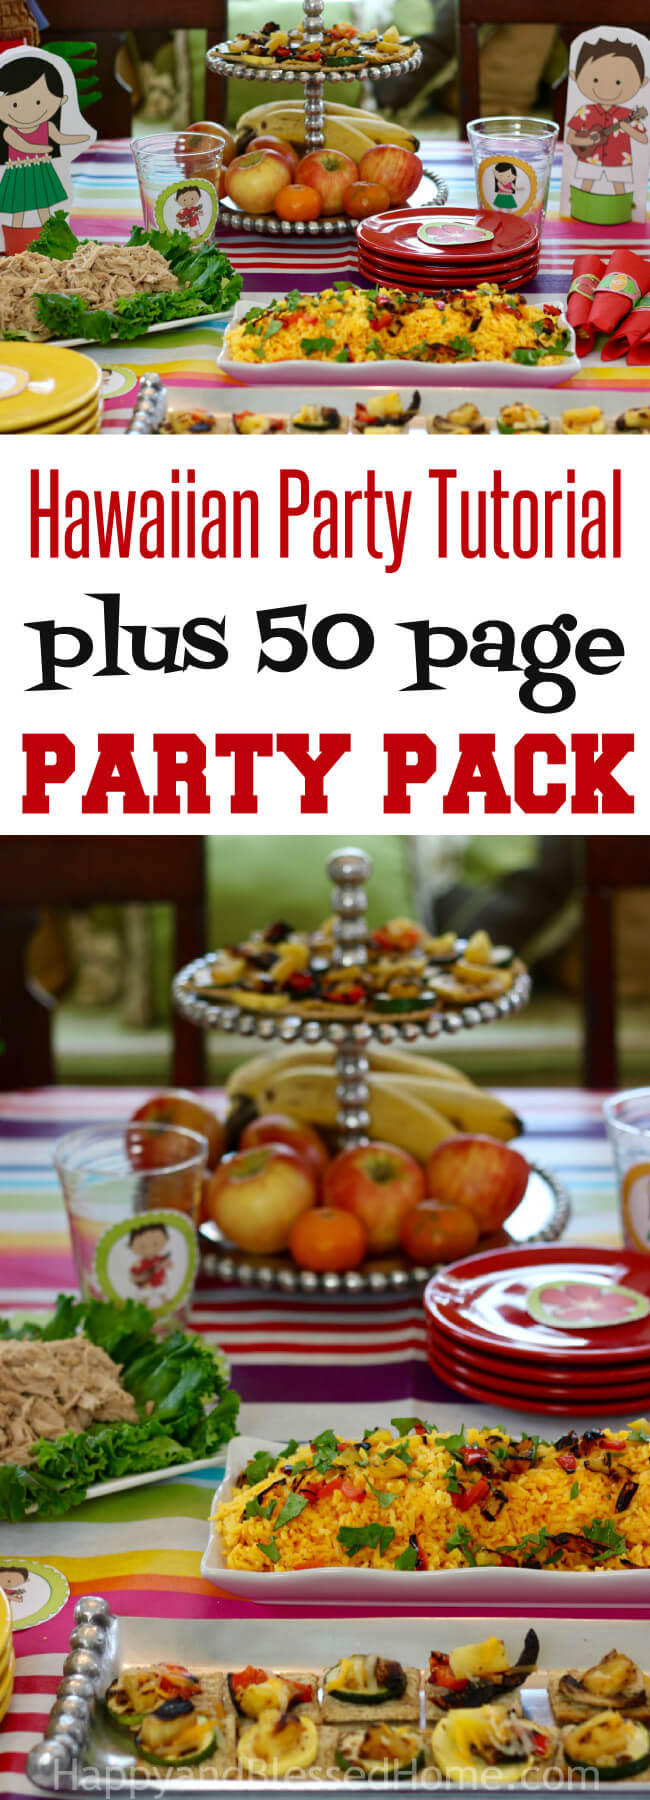 An amazing Party Tutorial plus 50 Page Hawaiian Luau Party Pack and an easy Hawaiian Grilled Summer Vegetables Recipe